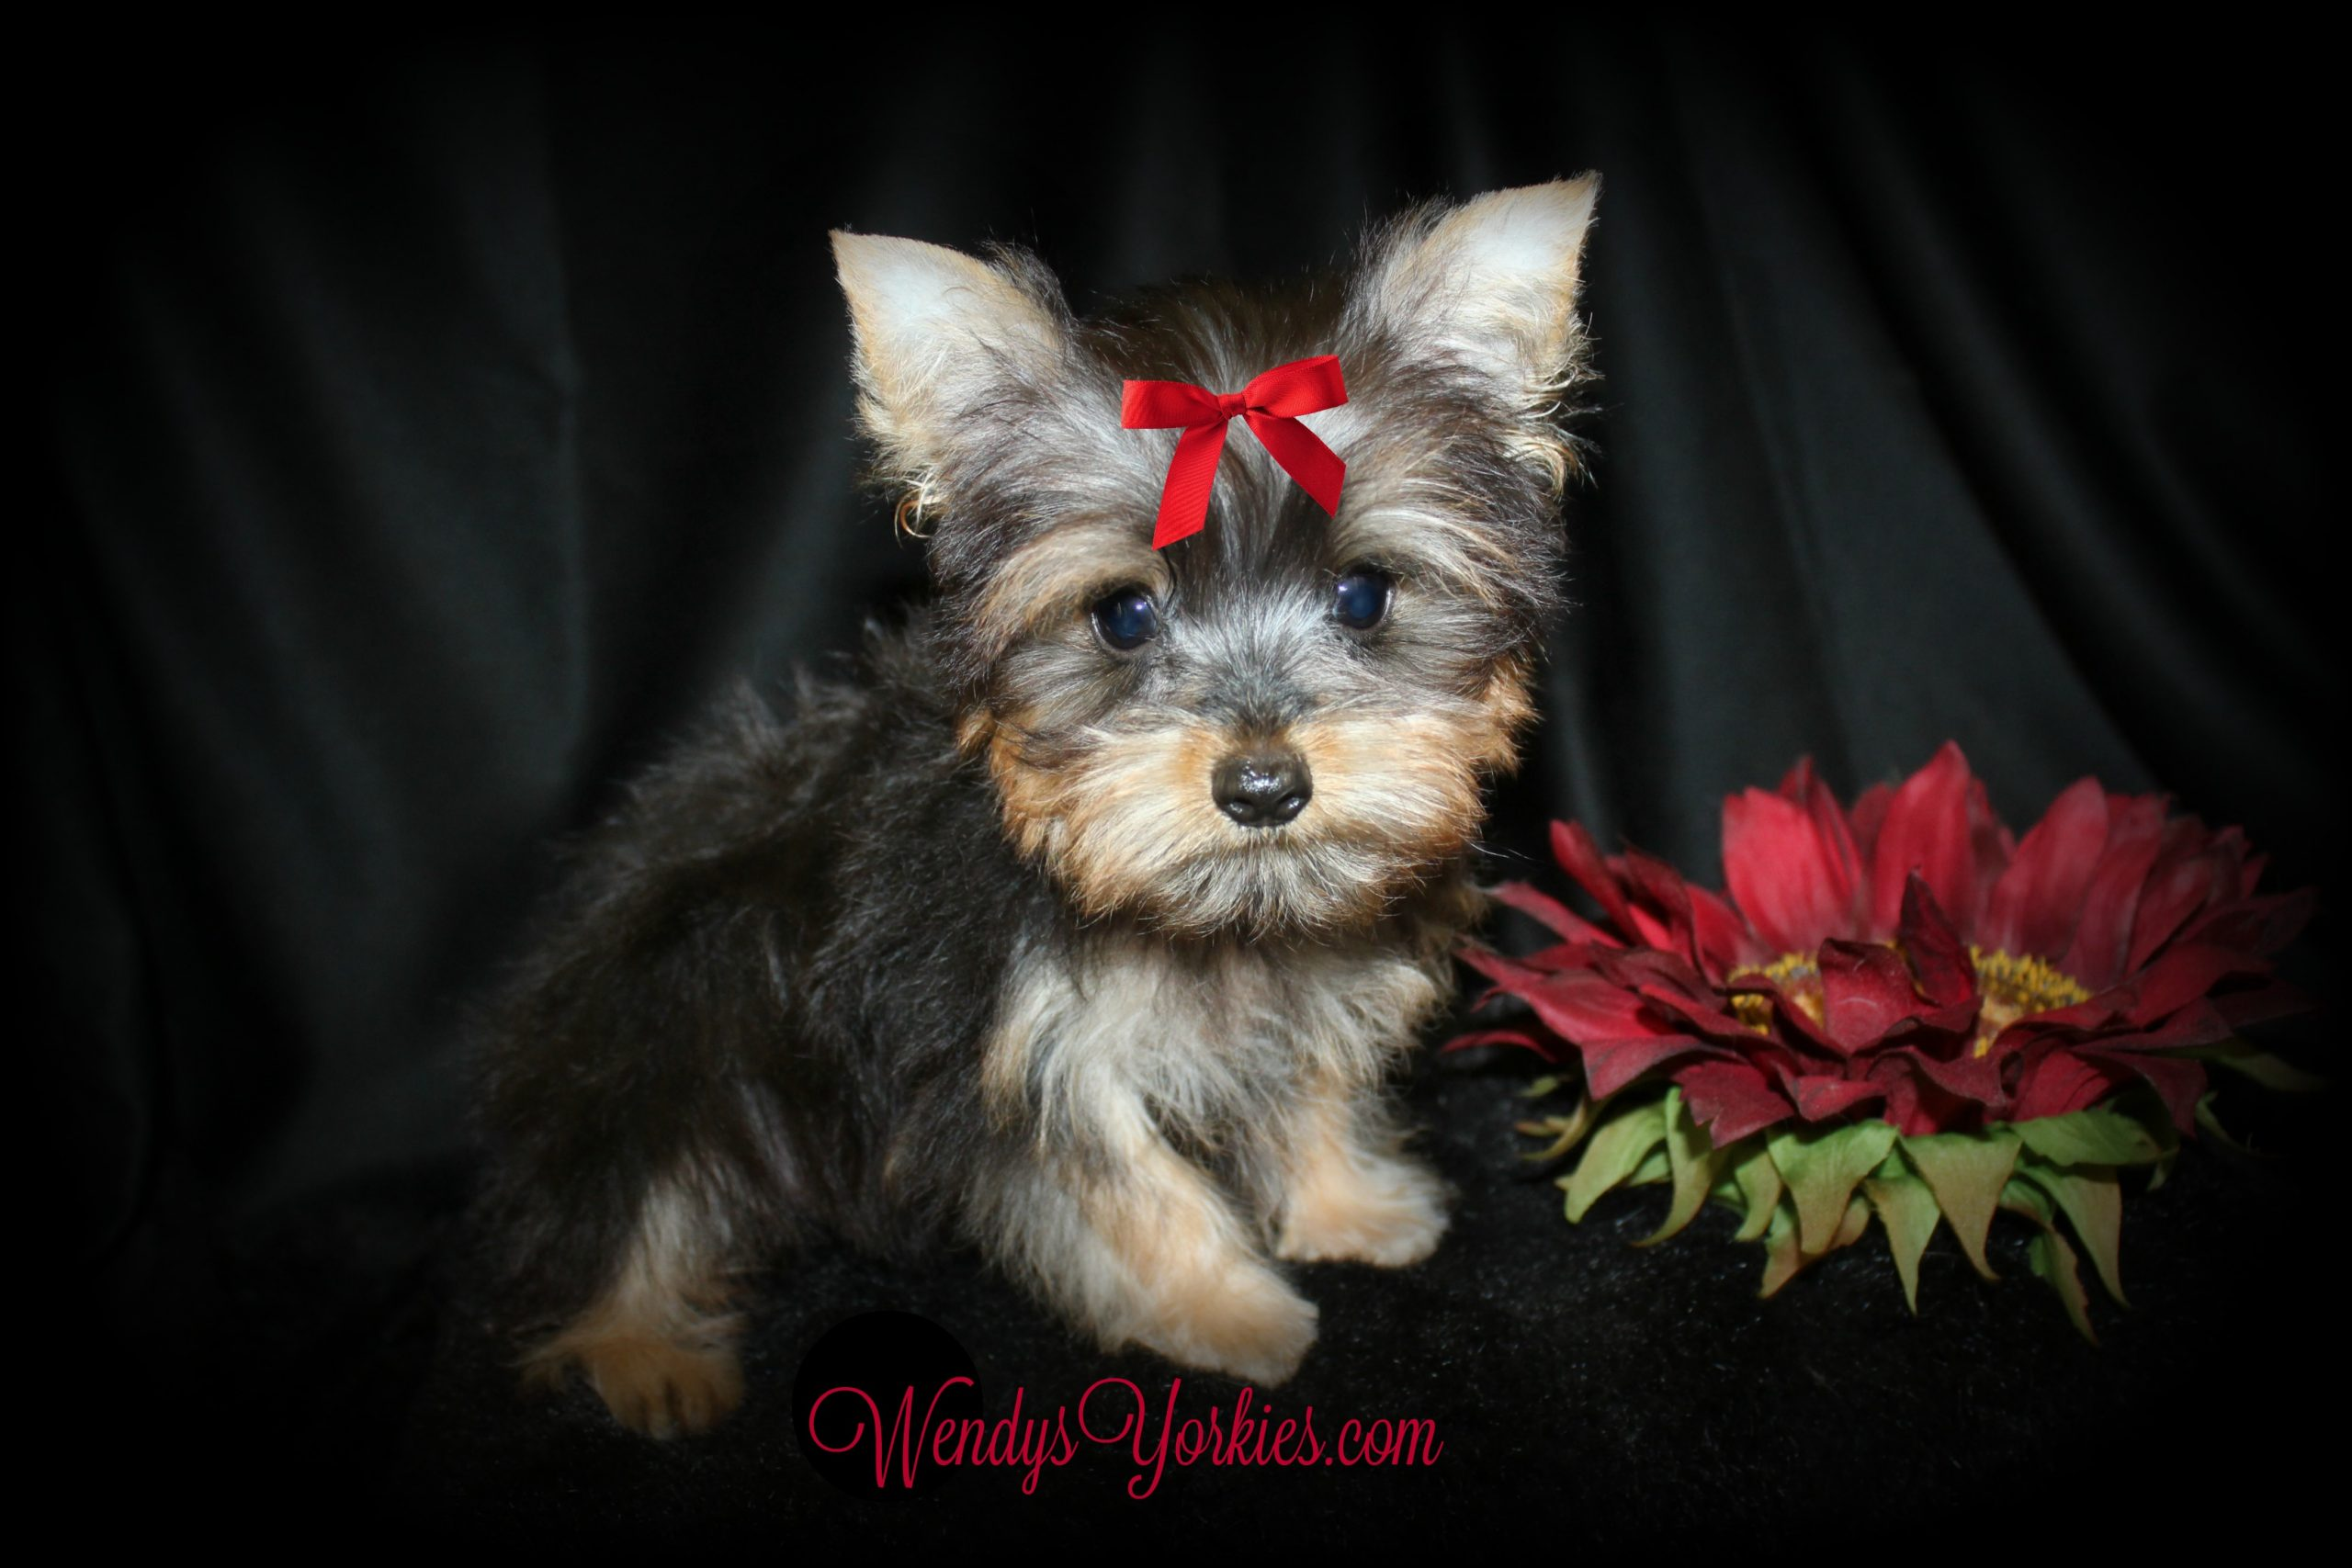 Teacup Yorkie puppy for sale, Happy, WendysYorkies.com